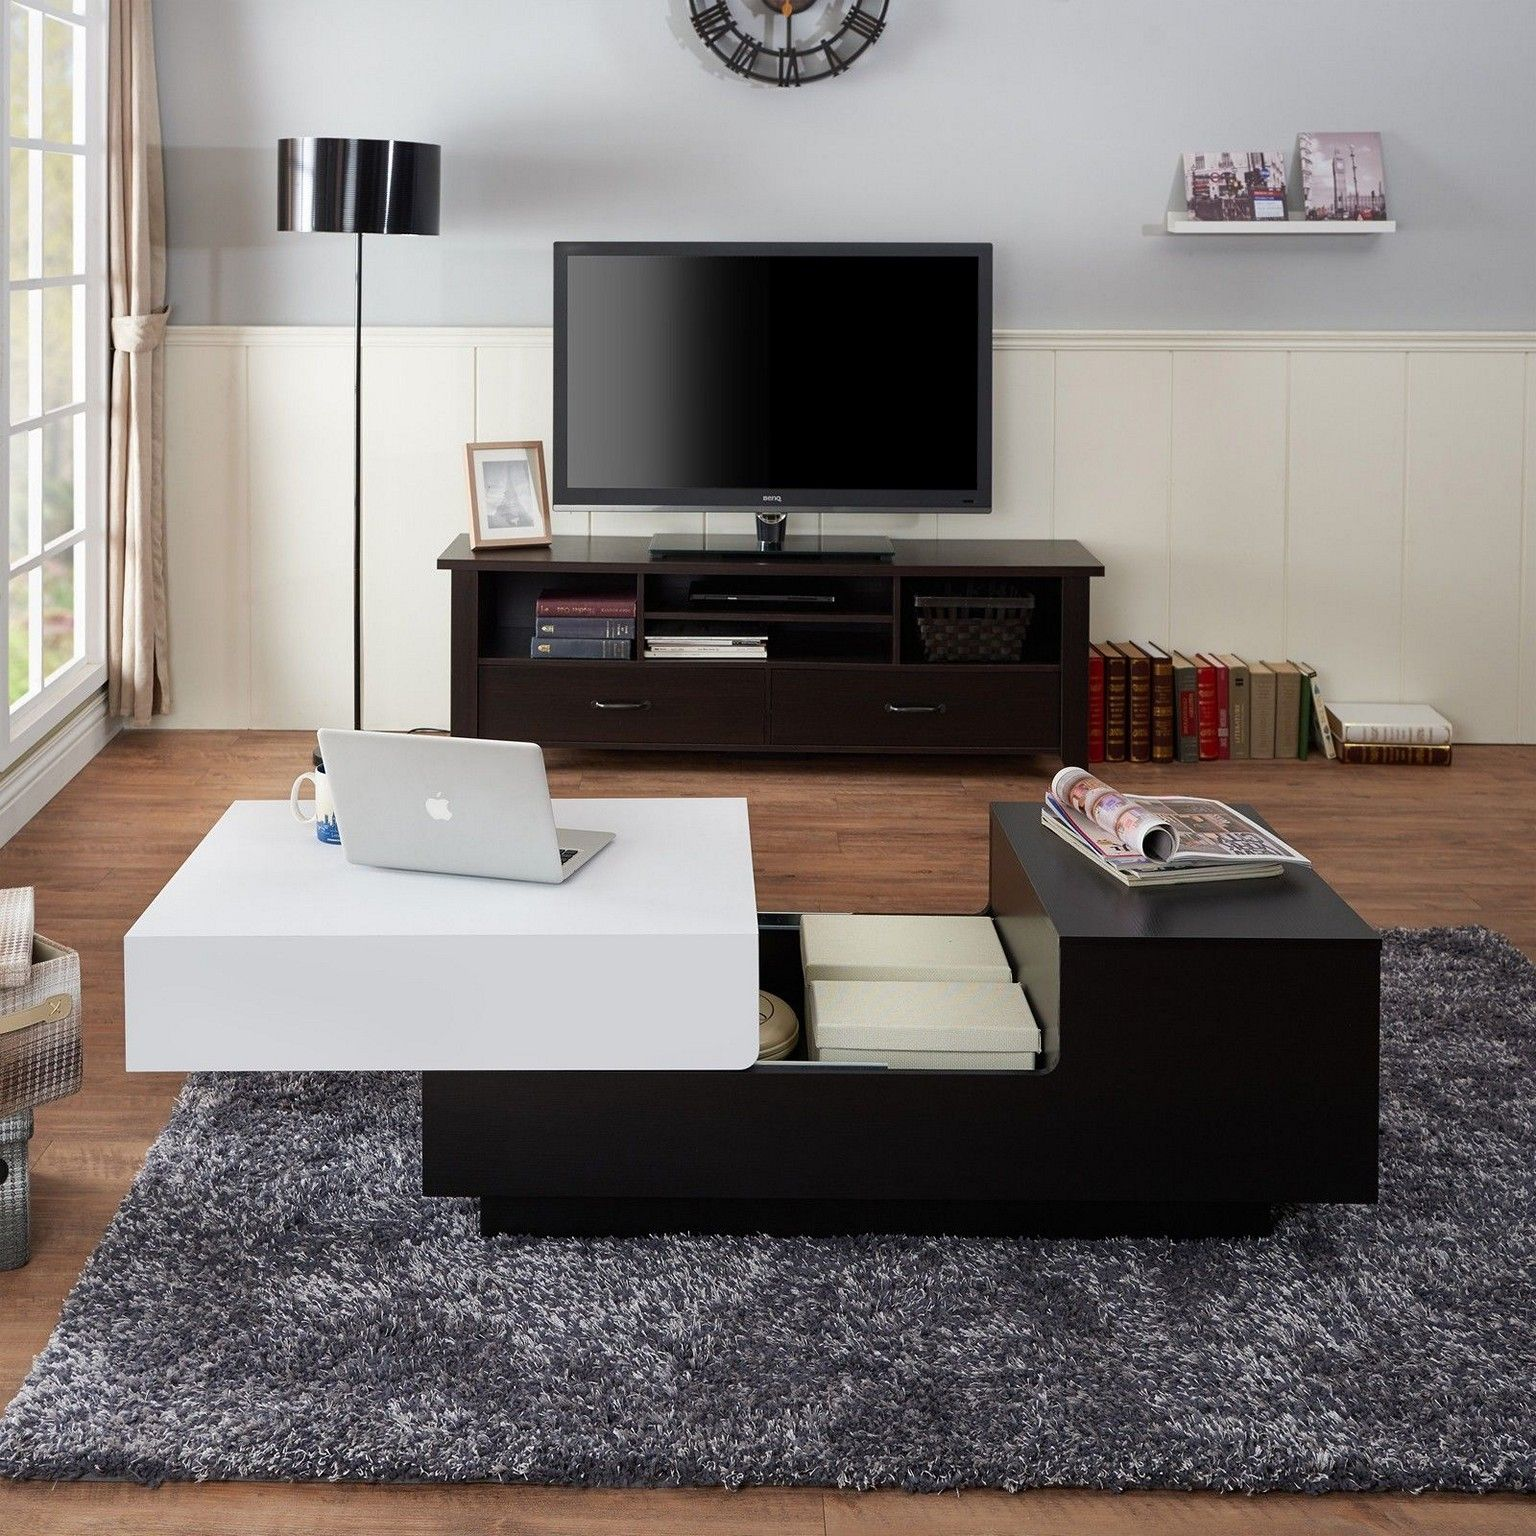 5 ideas for a do it yourself coffee table lets do it coffee room solutioingenieria Image collections